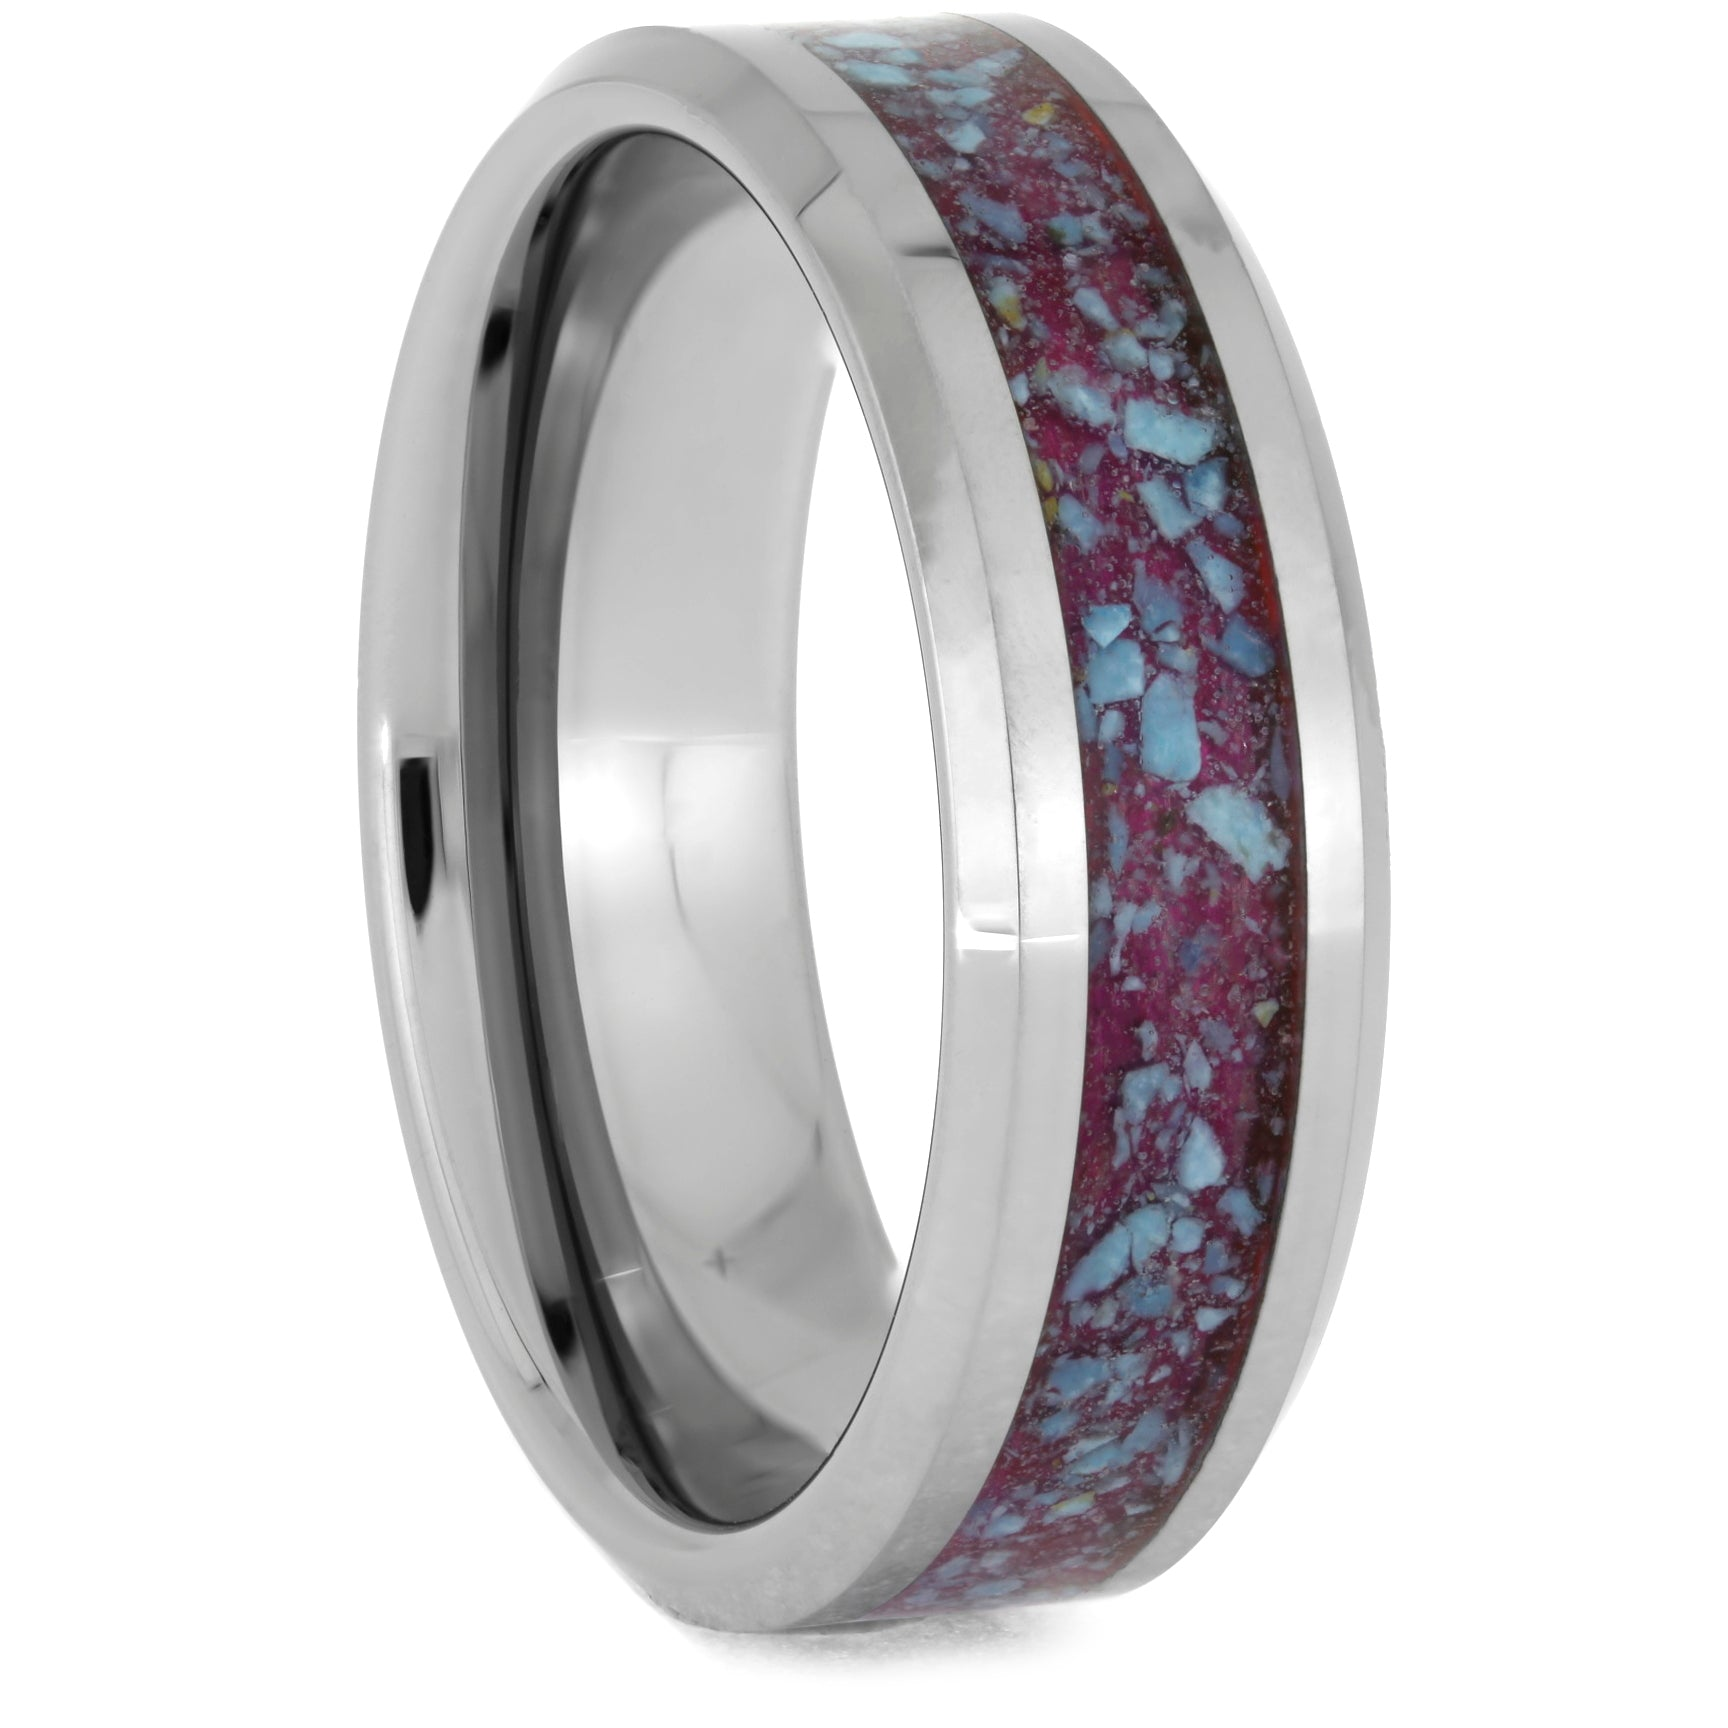 Crushed Turquoise Men's Wedding Band in Tungsten, Size 12.5-RS10677 - Jewelry by Johan